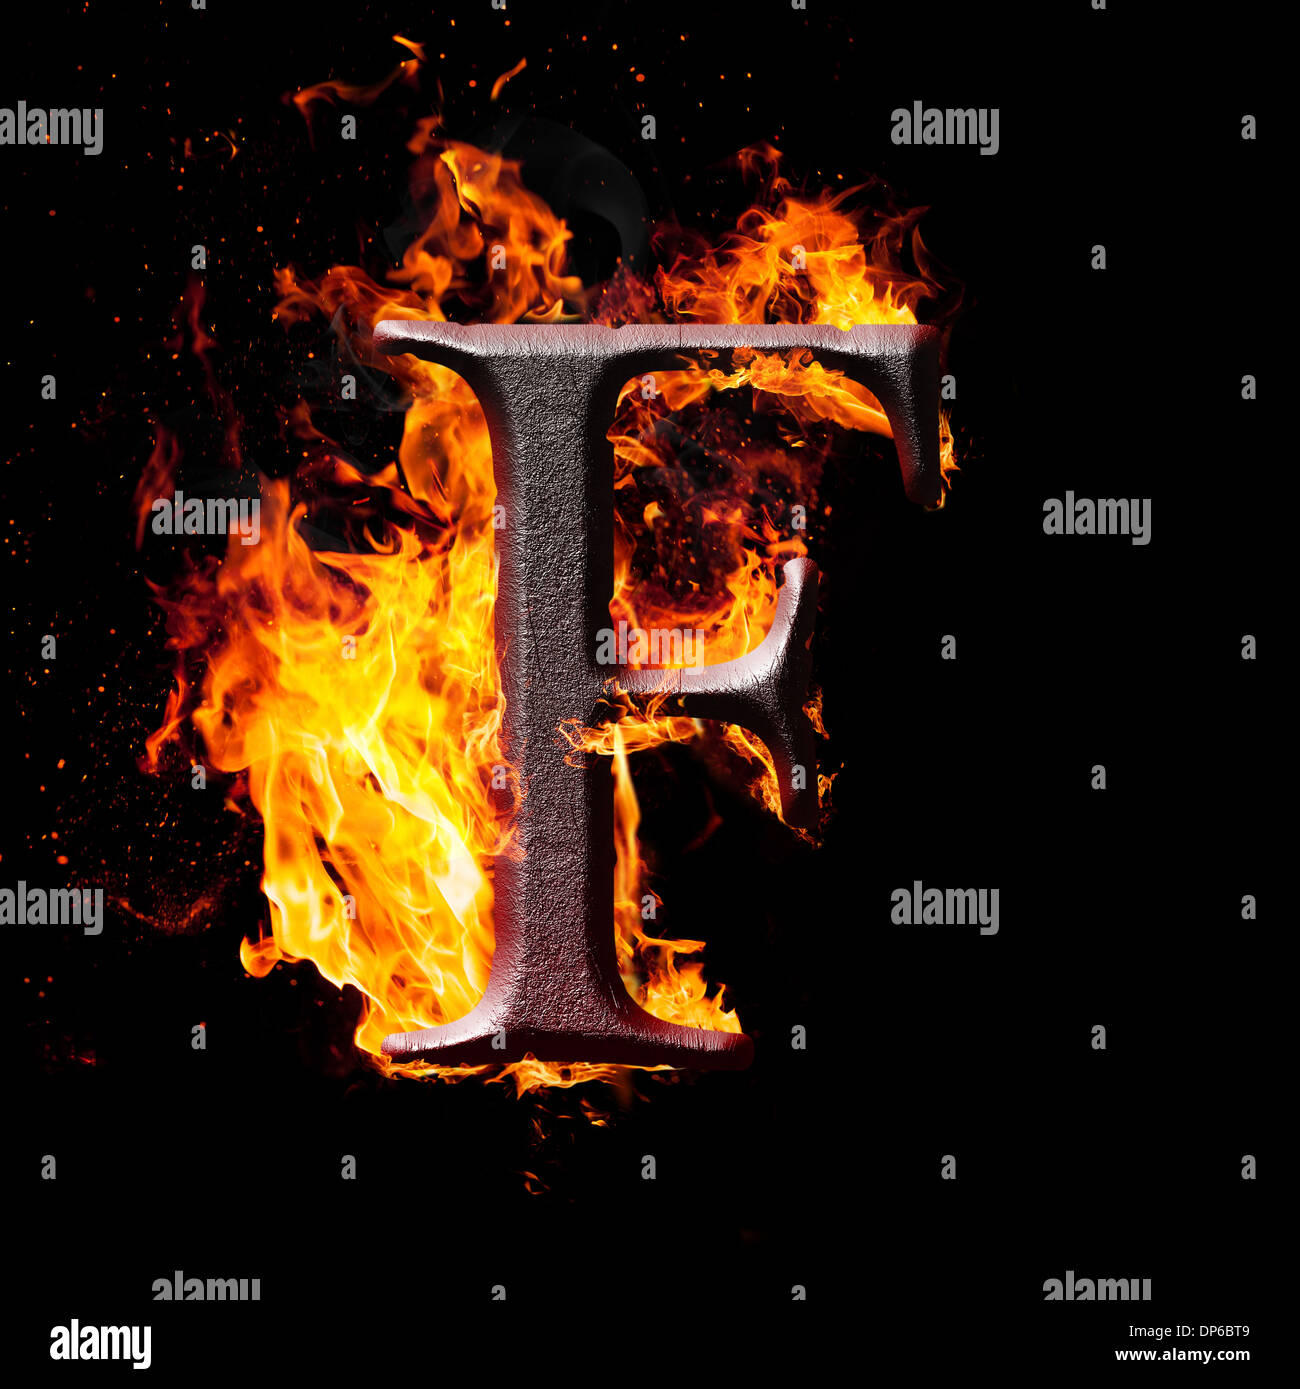 Letters and symbols in fire f stock photo 65294553 alamy letters and symbols in fire f altavistaventures Images